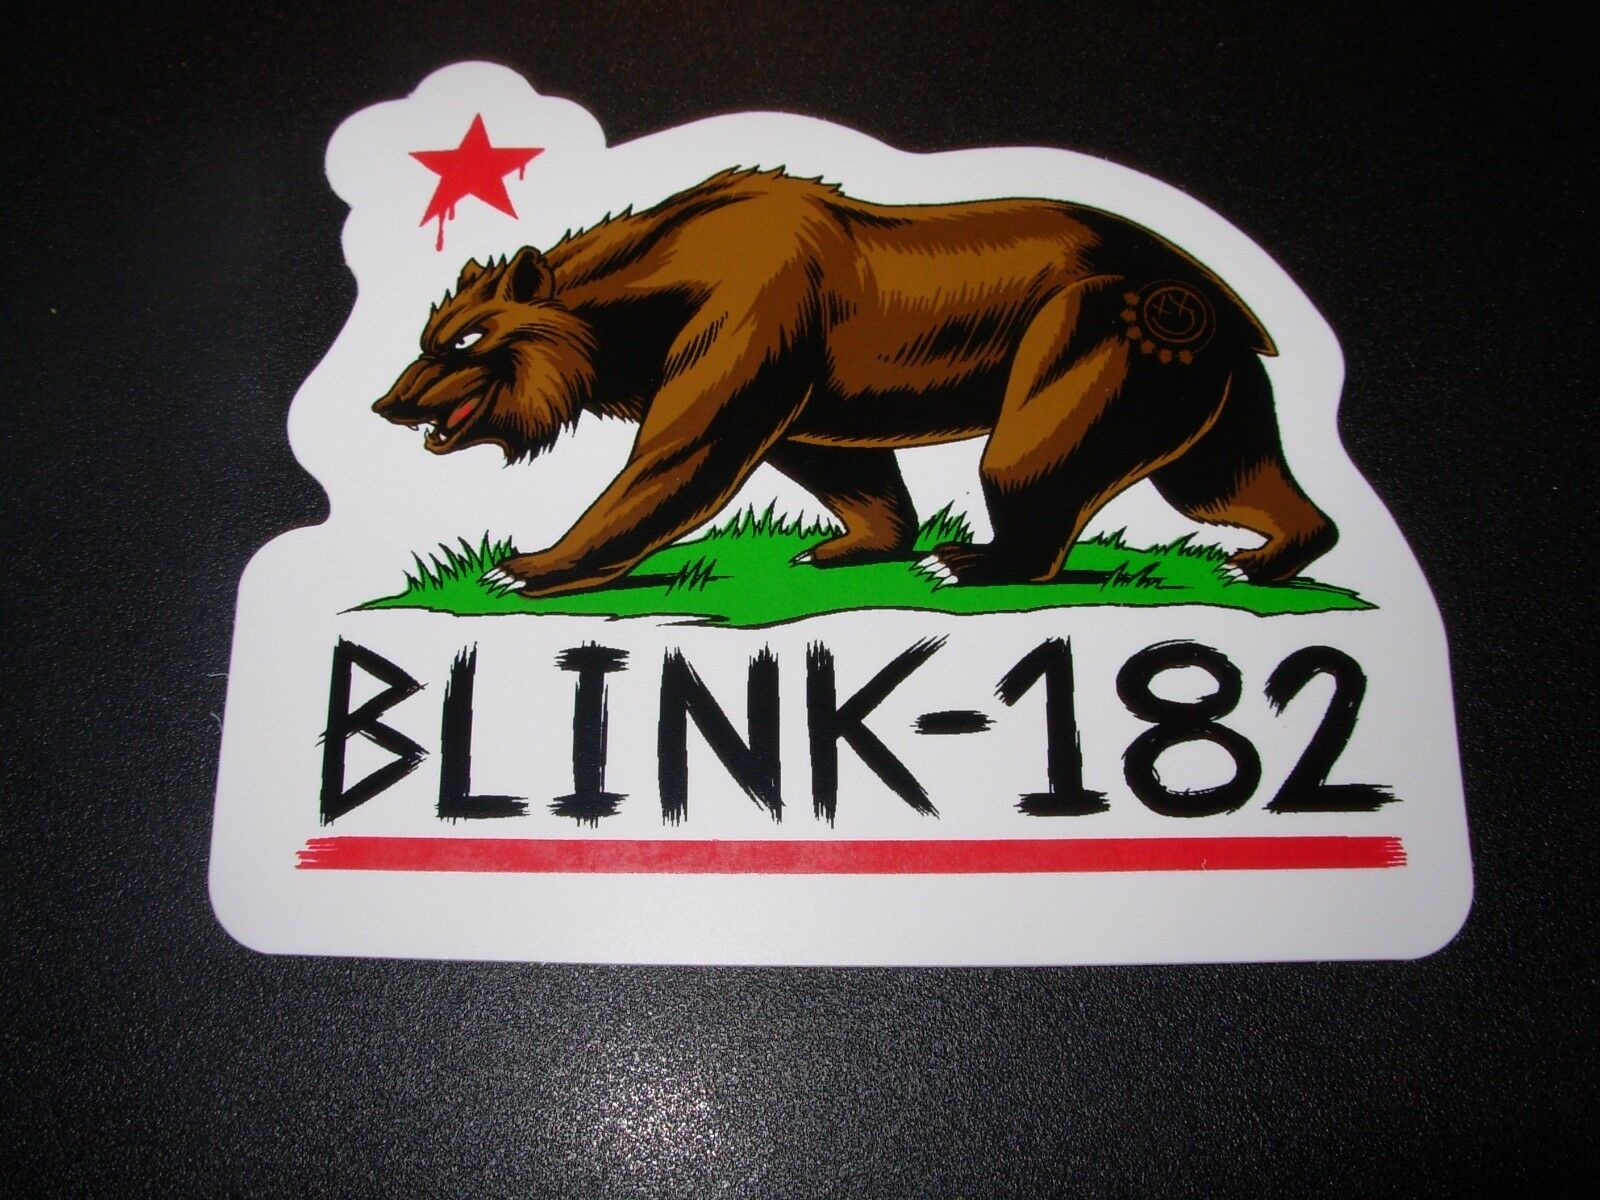 BLINK 182 Enema of the State Blue Pill sticker decal 5in wide